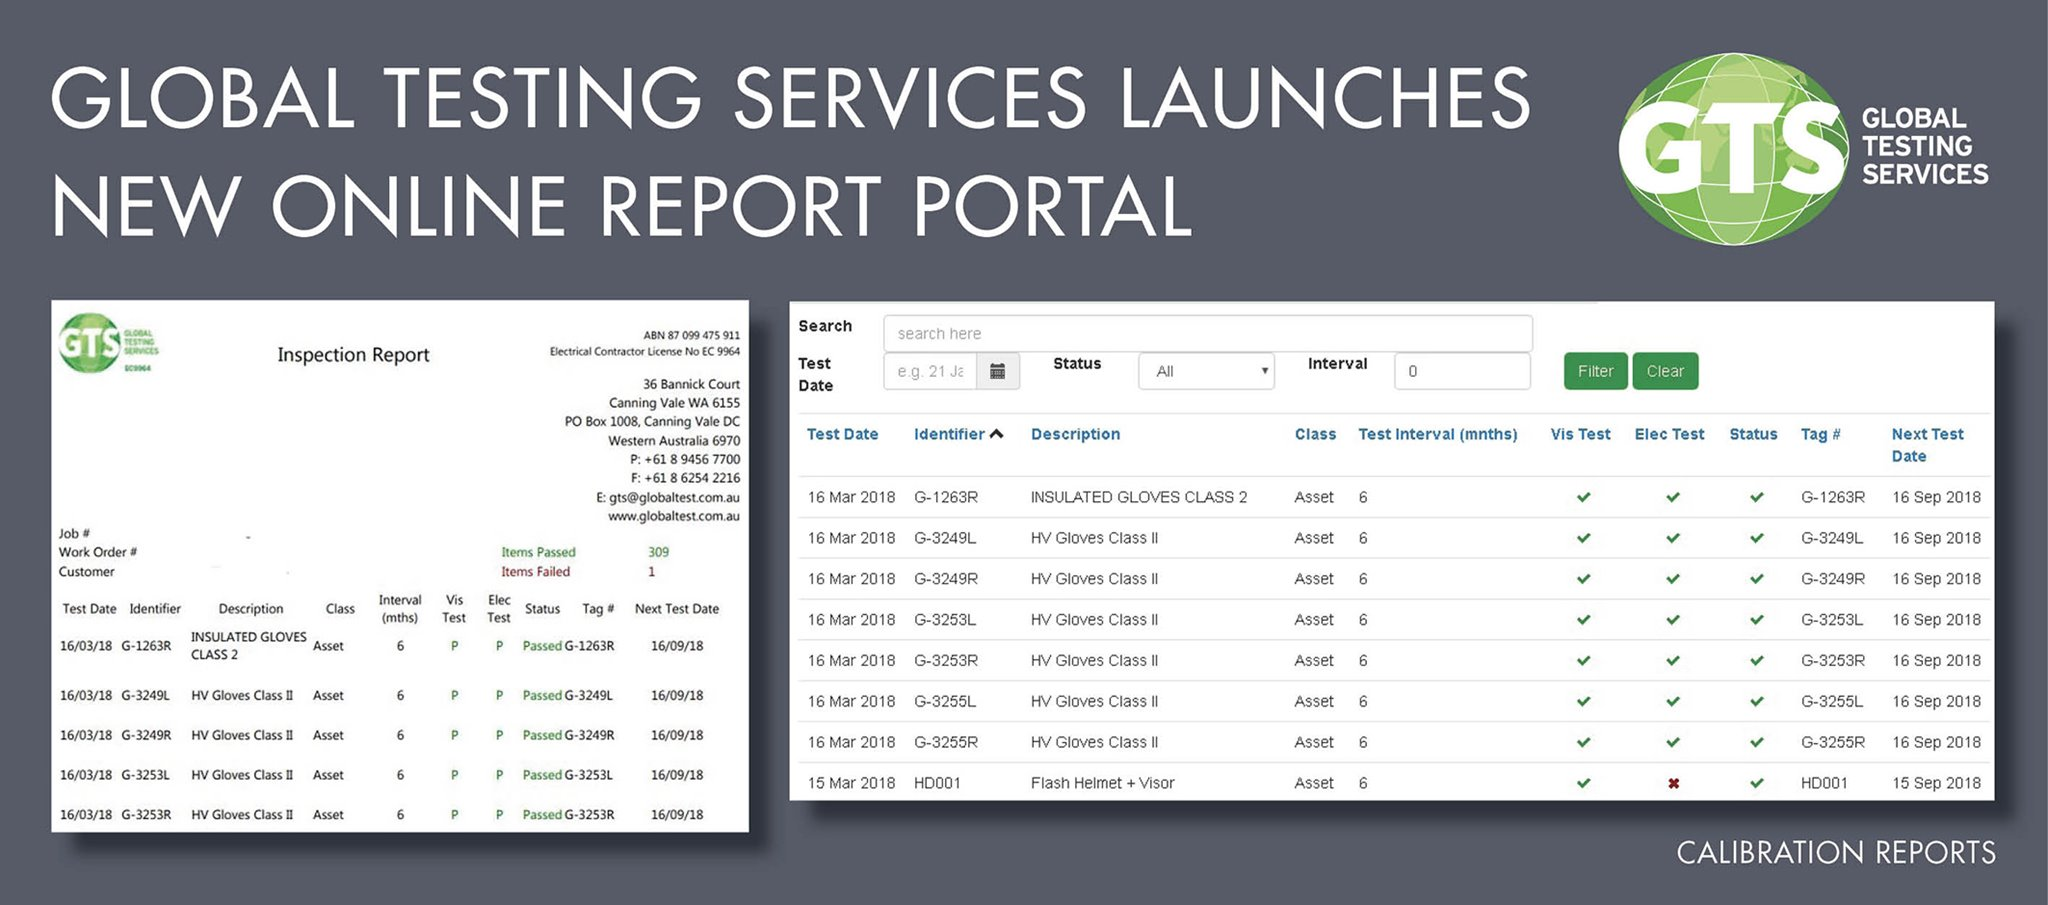 GTS launches new online report portal